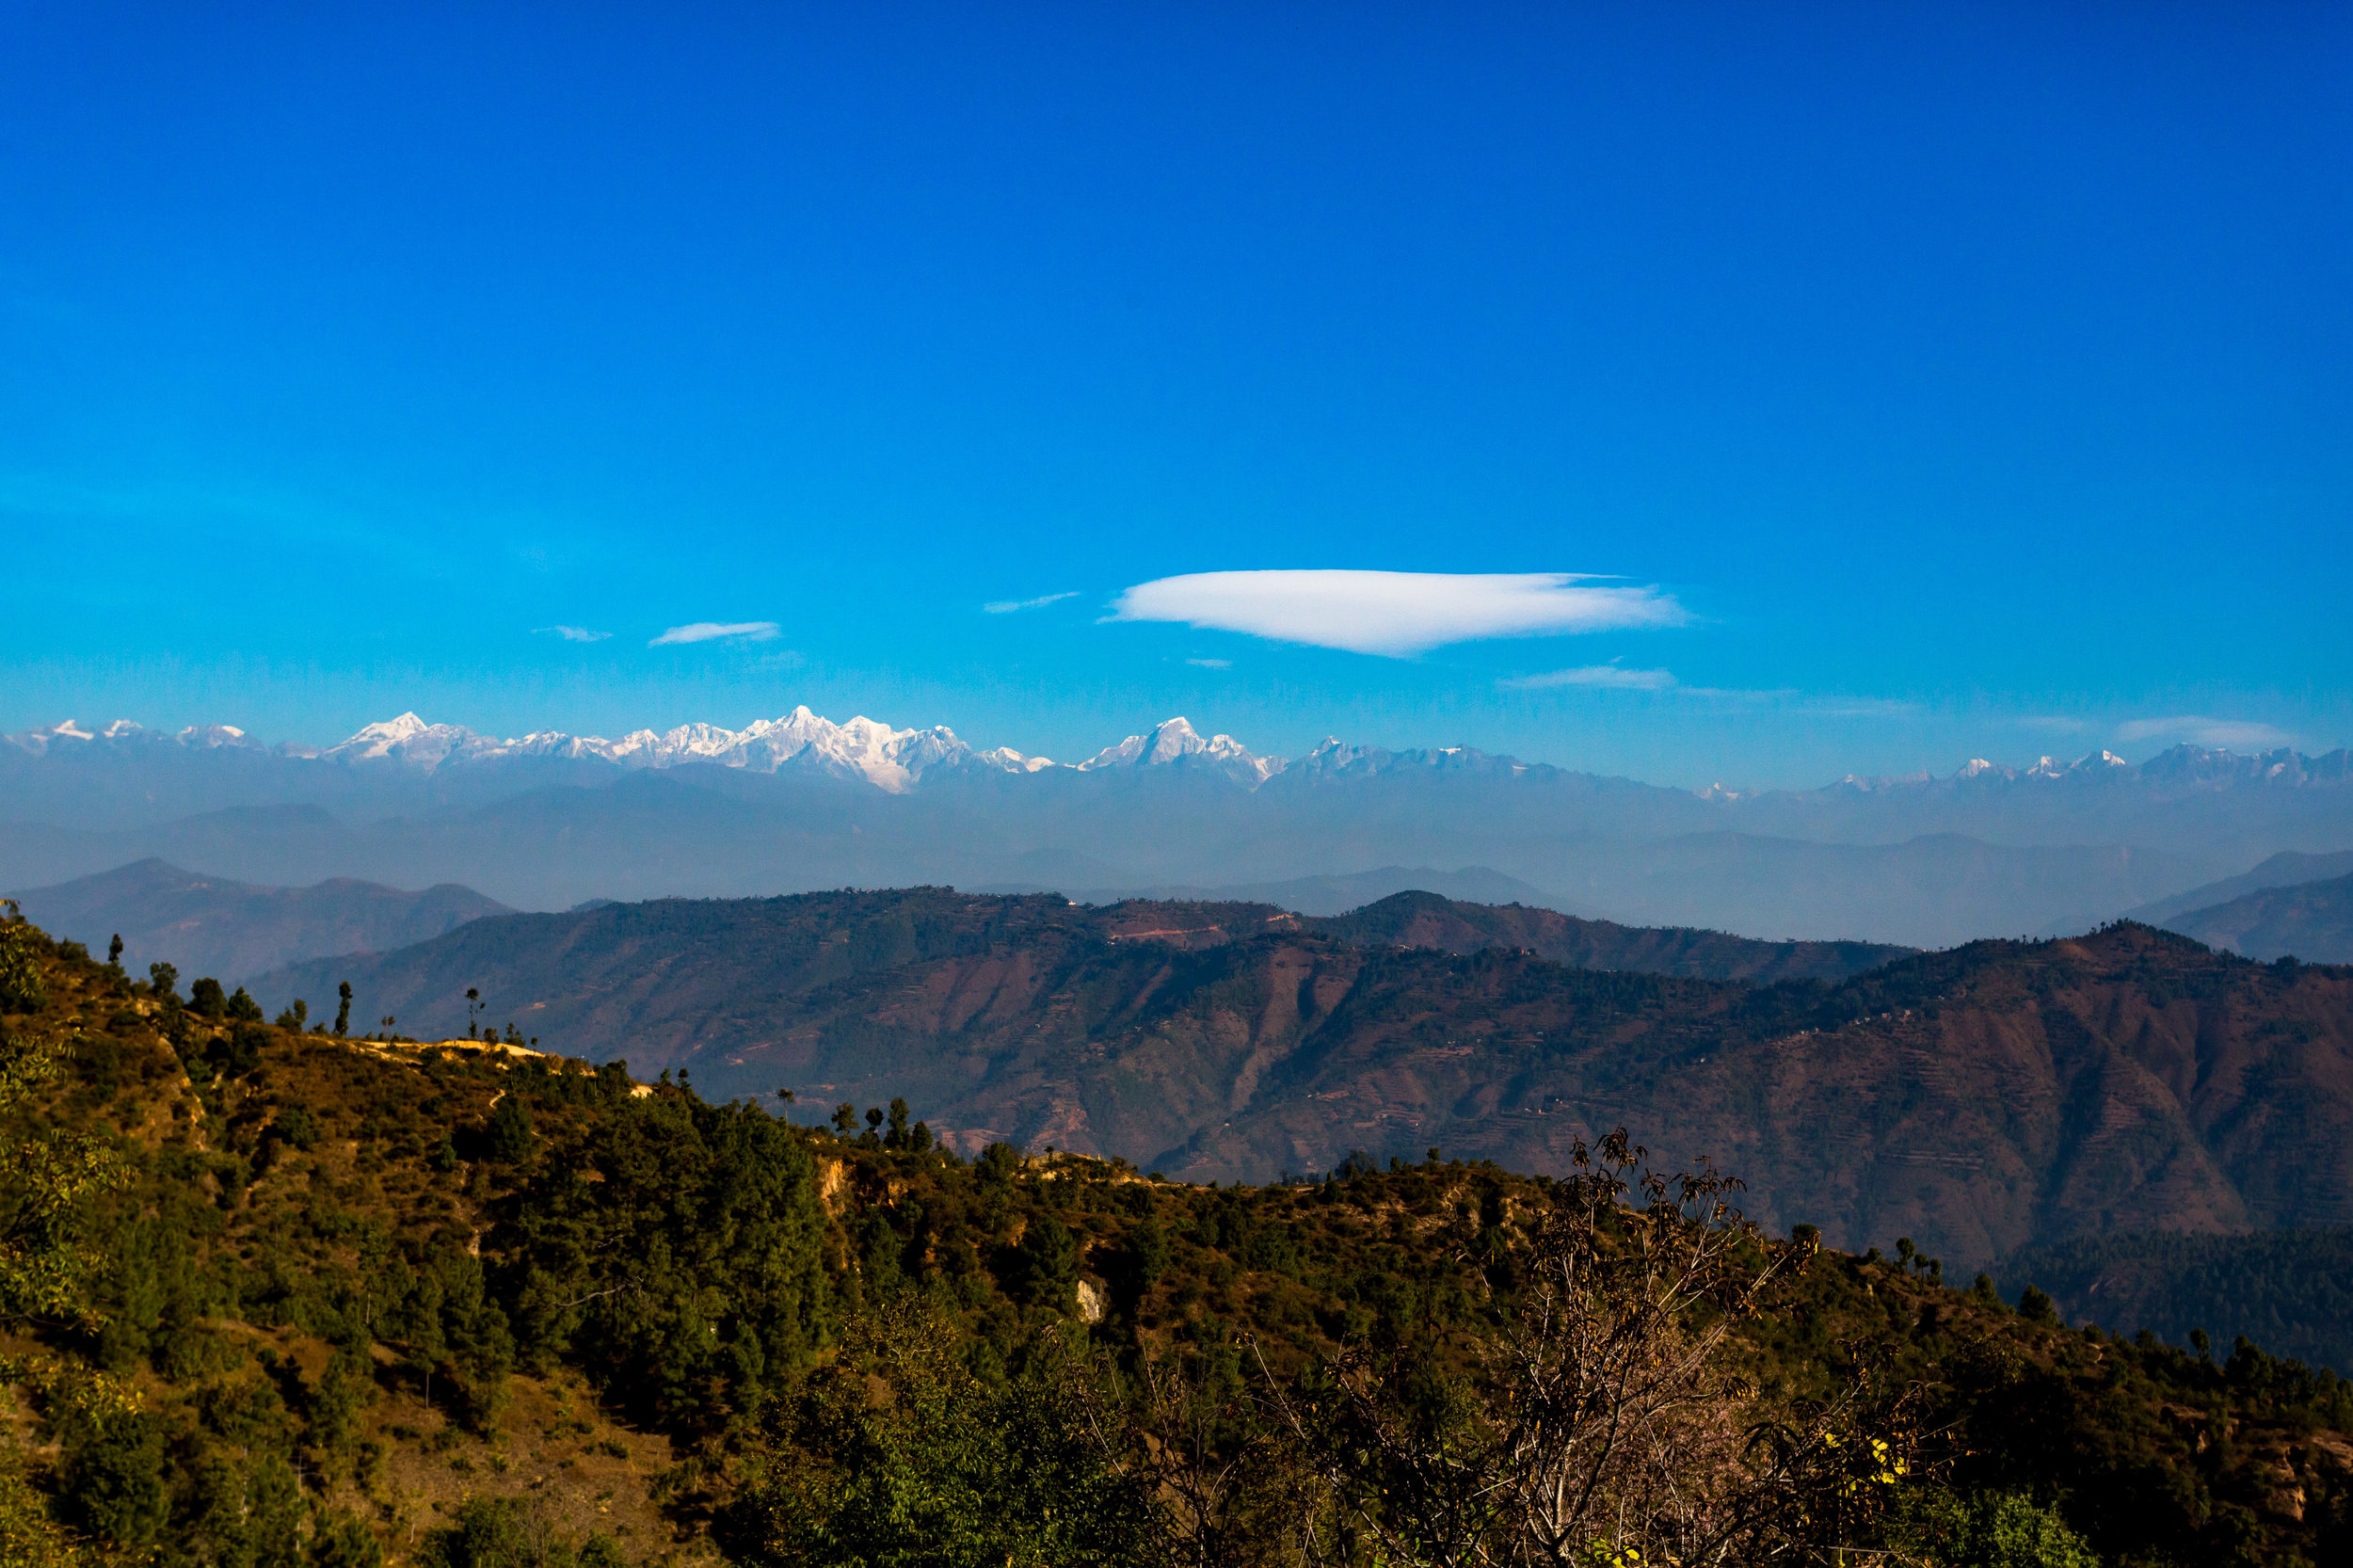 Himalayas is visible from various parts of Nepal?